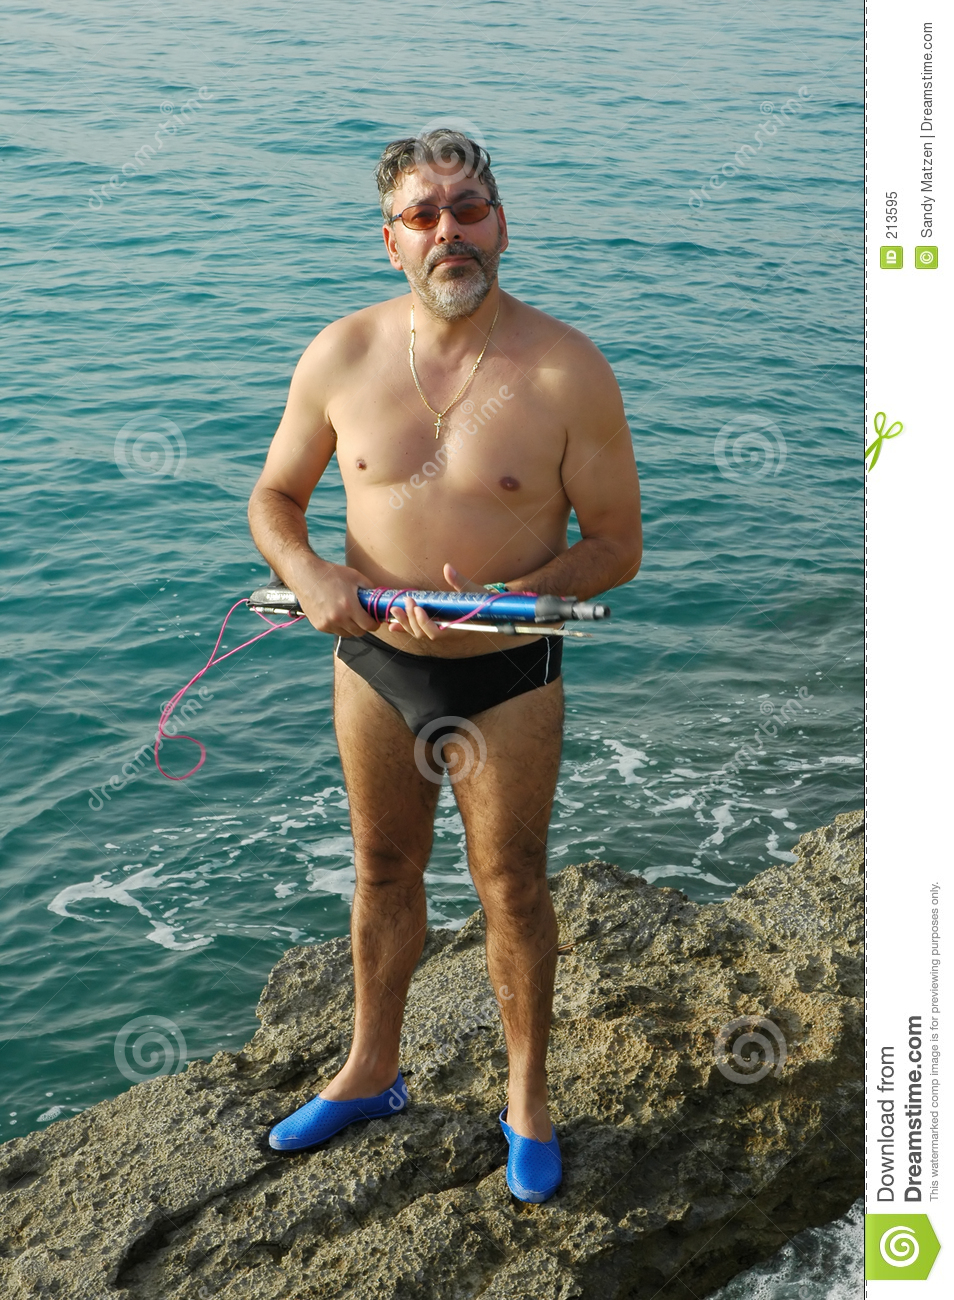 Spear Fishing Stock Photos - GoGraph